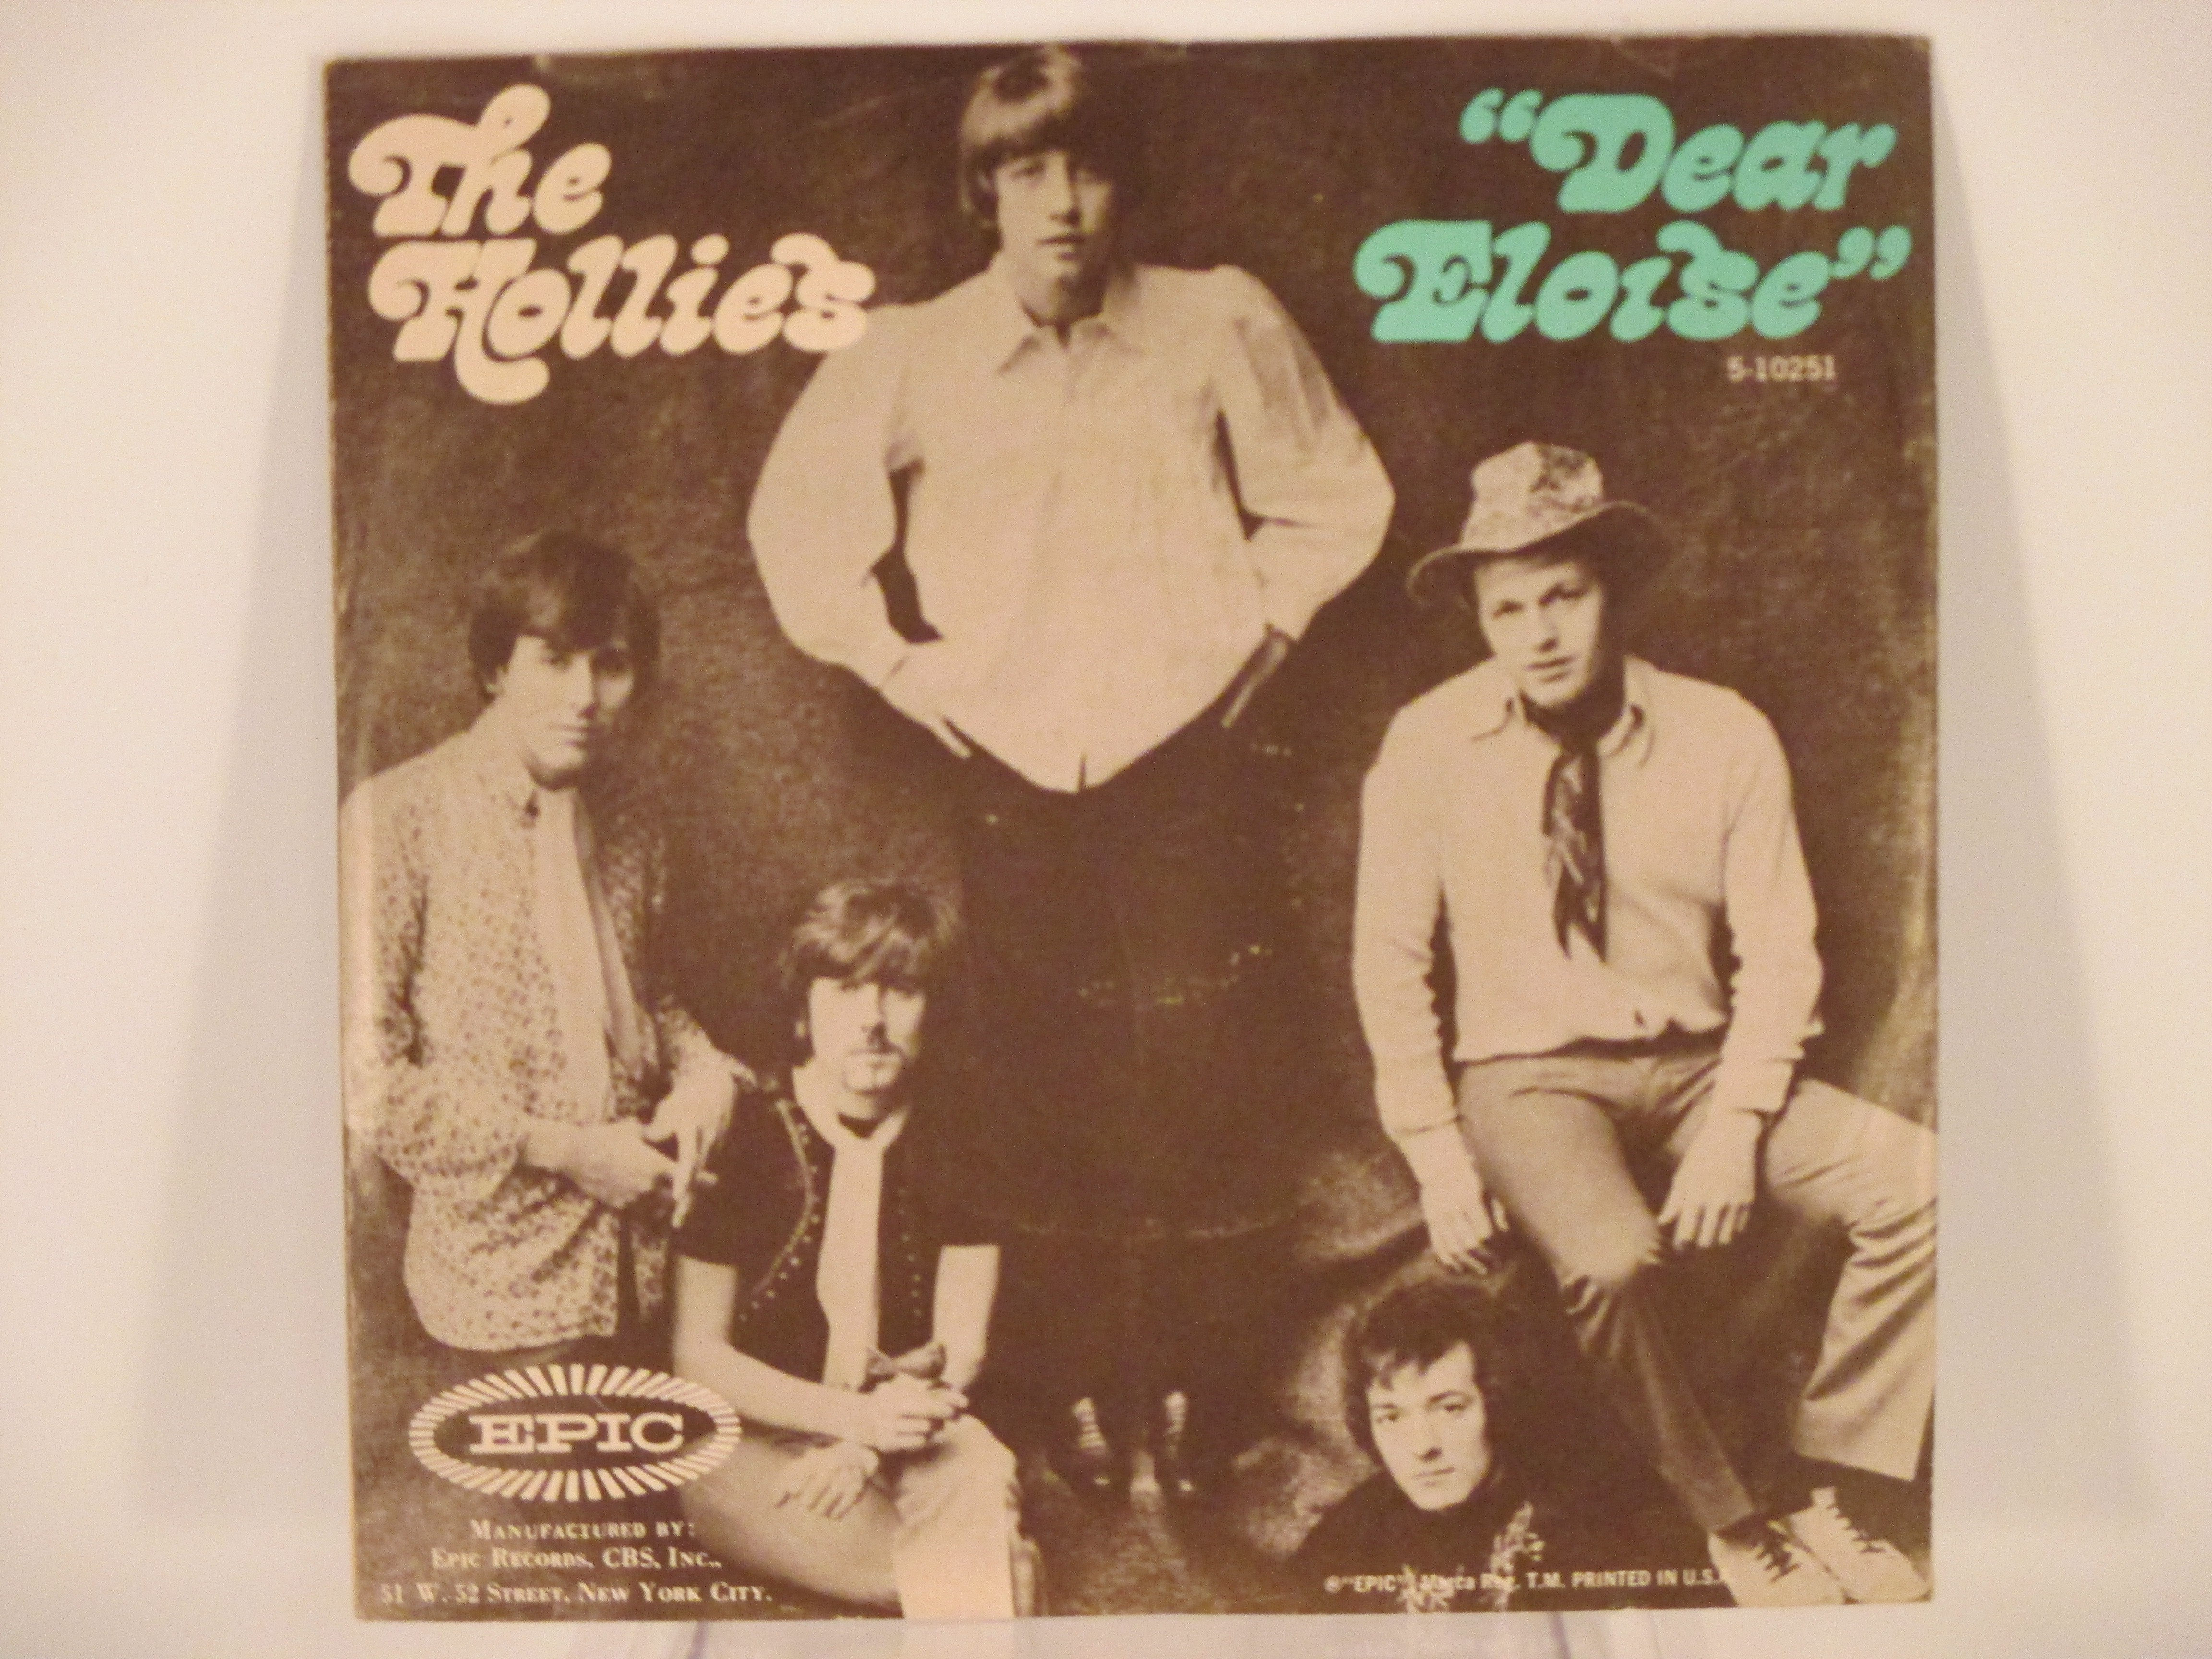 HOLLIES : Dear Eloise / When your lights turned on